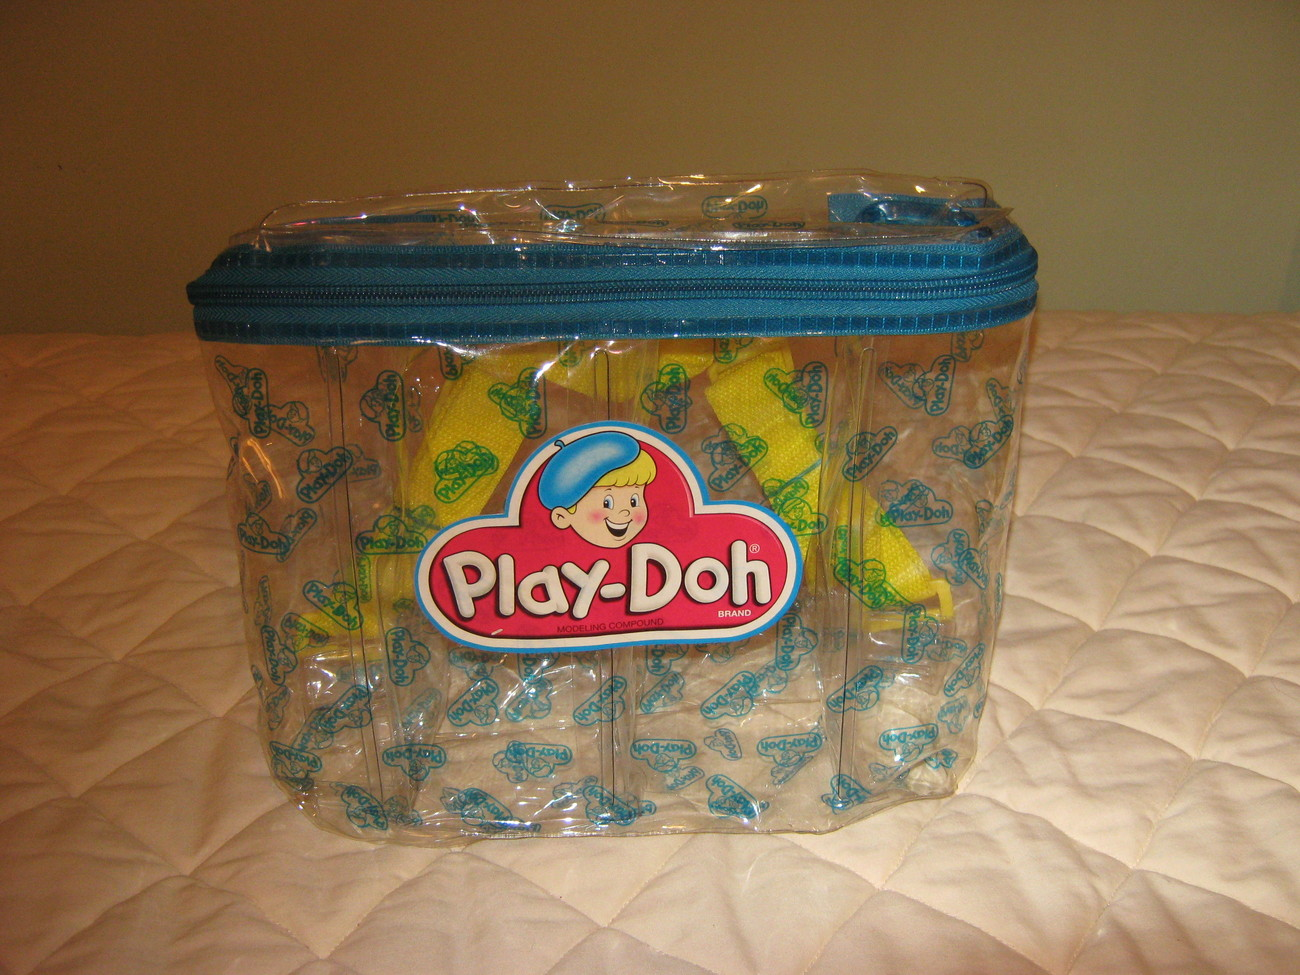 Play-Doh holder